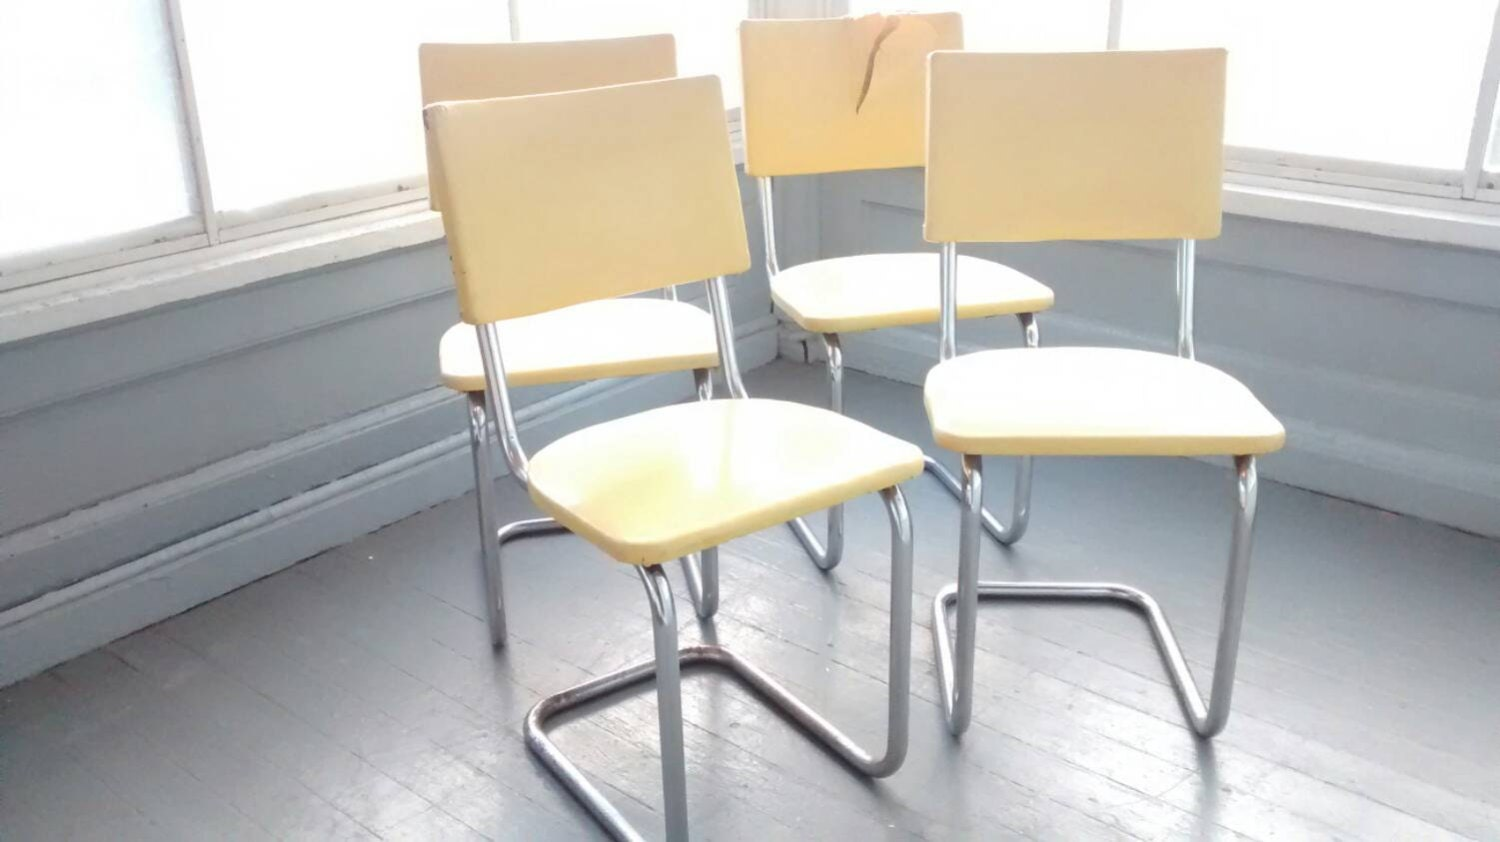 dinette chairs retro 50s metal vinyl chrome retro vintage set